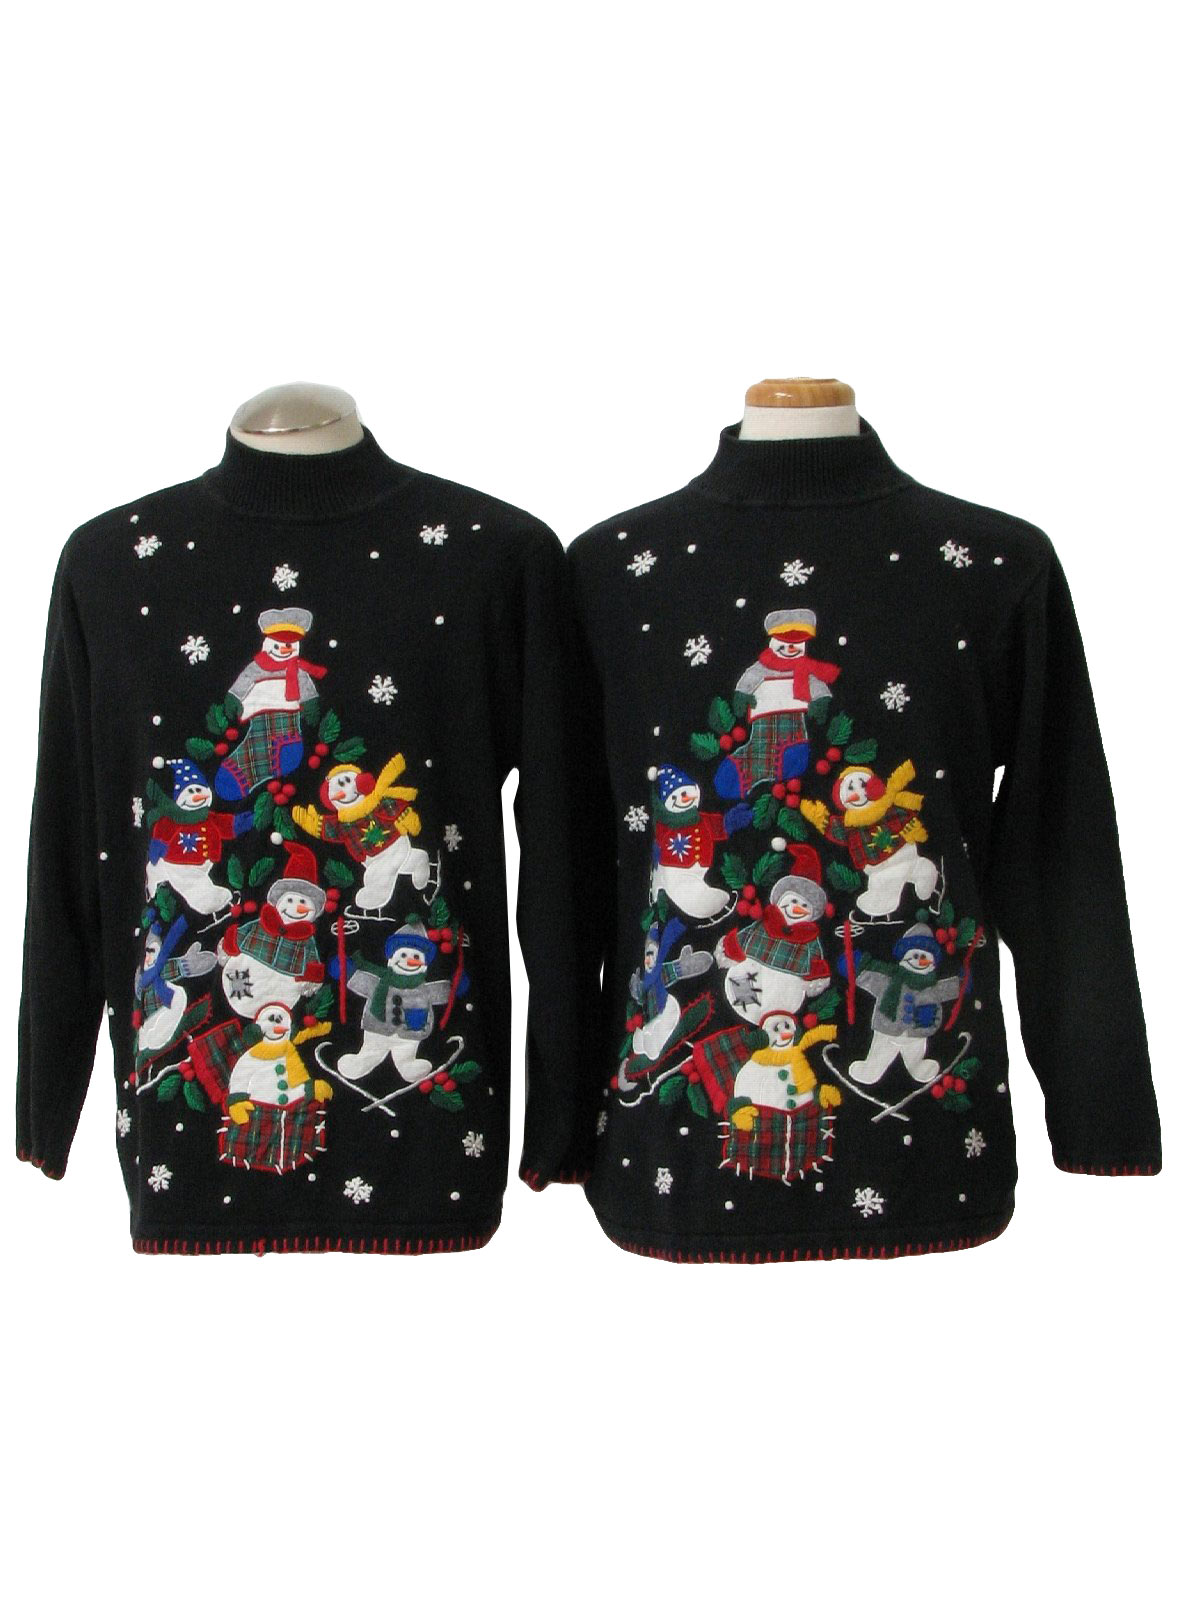 Pair of Matching Ugly Christmas Sweaters: -BP Design- Oh snap, looks ...